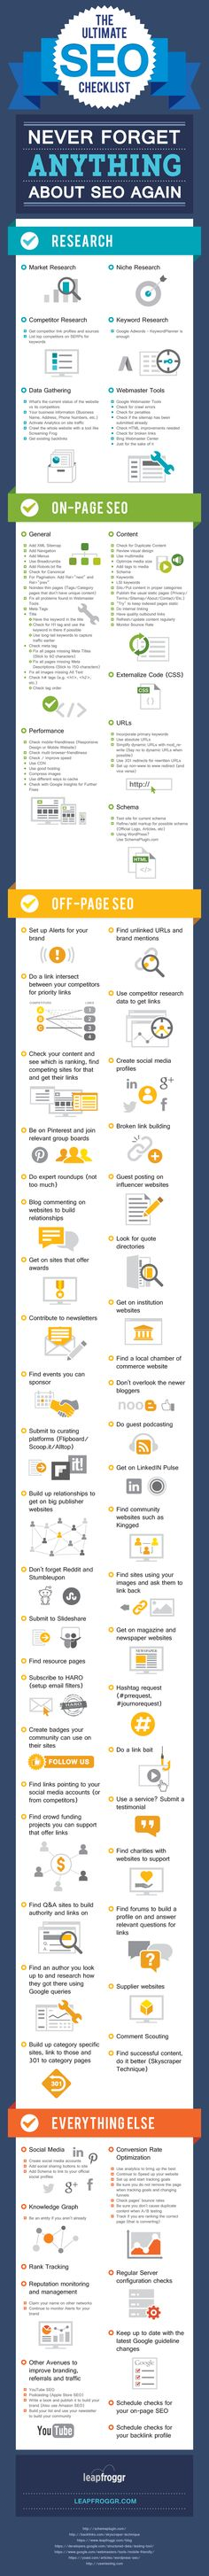 The Ultimate SEO Checklist for Business Owners